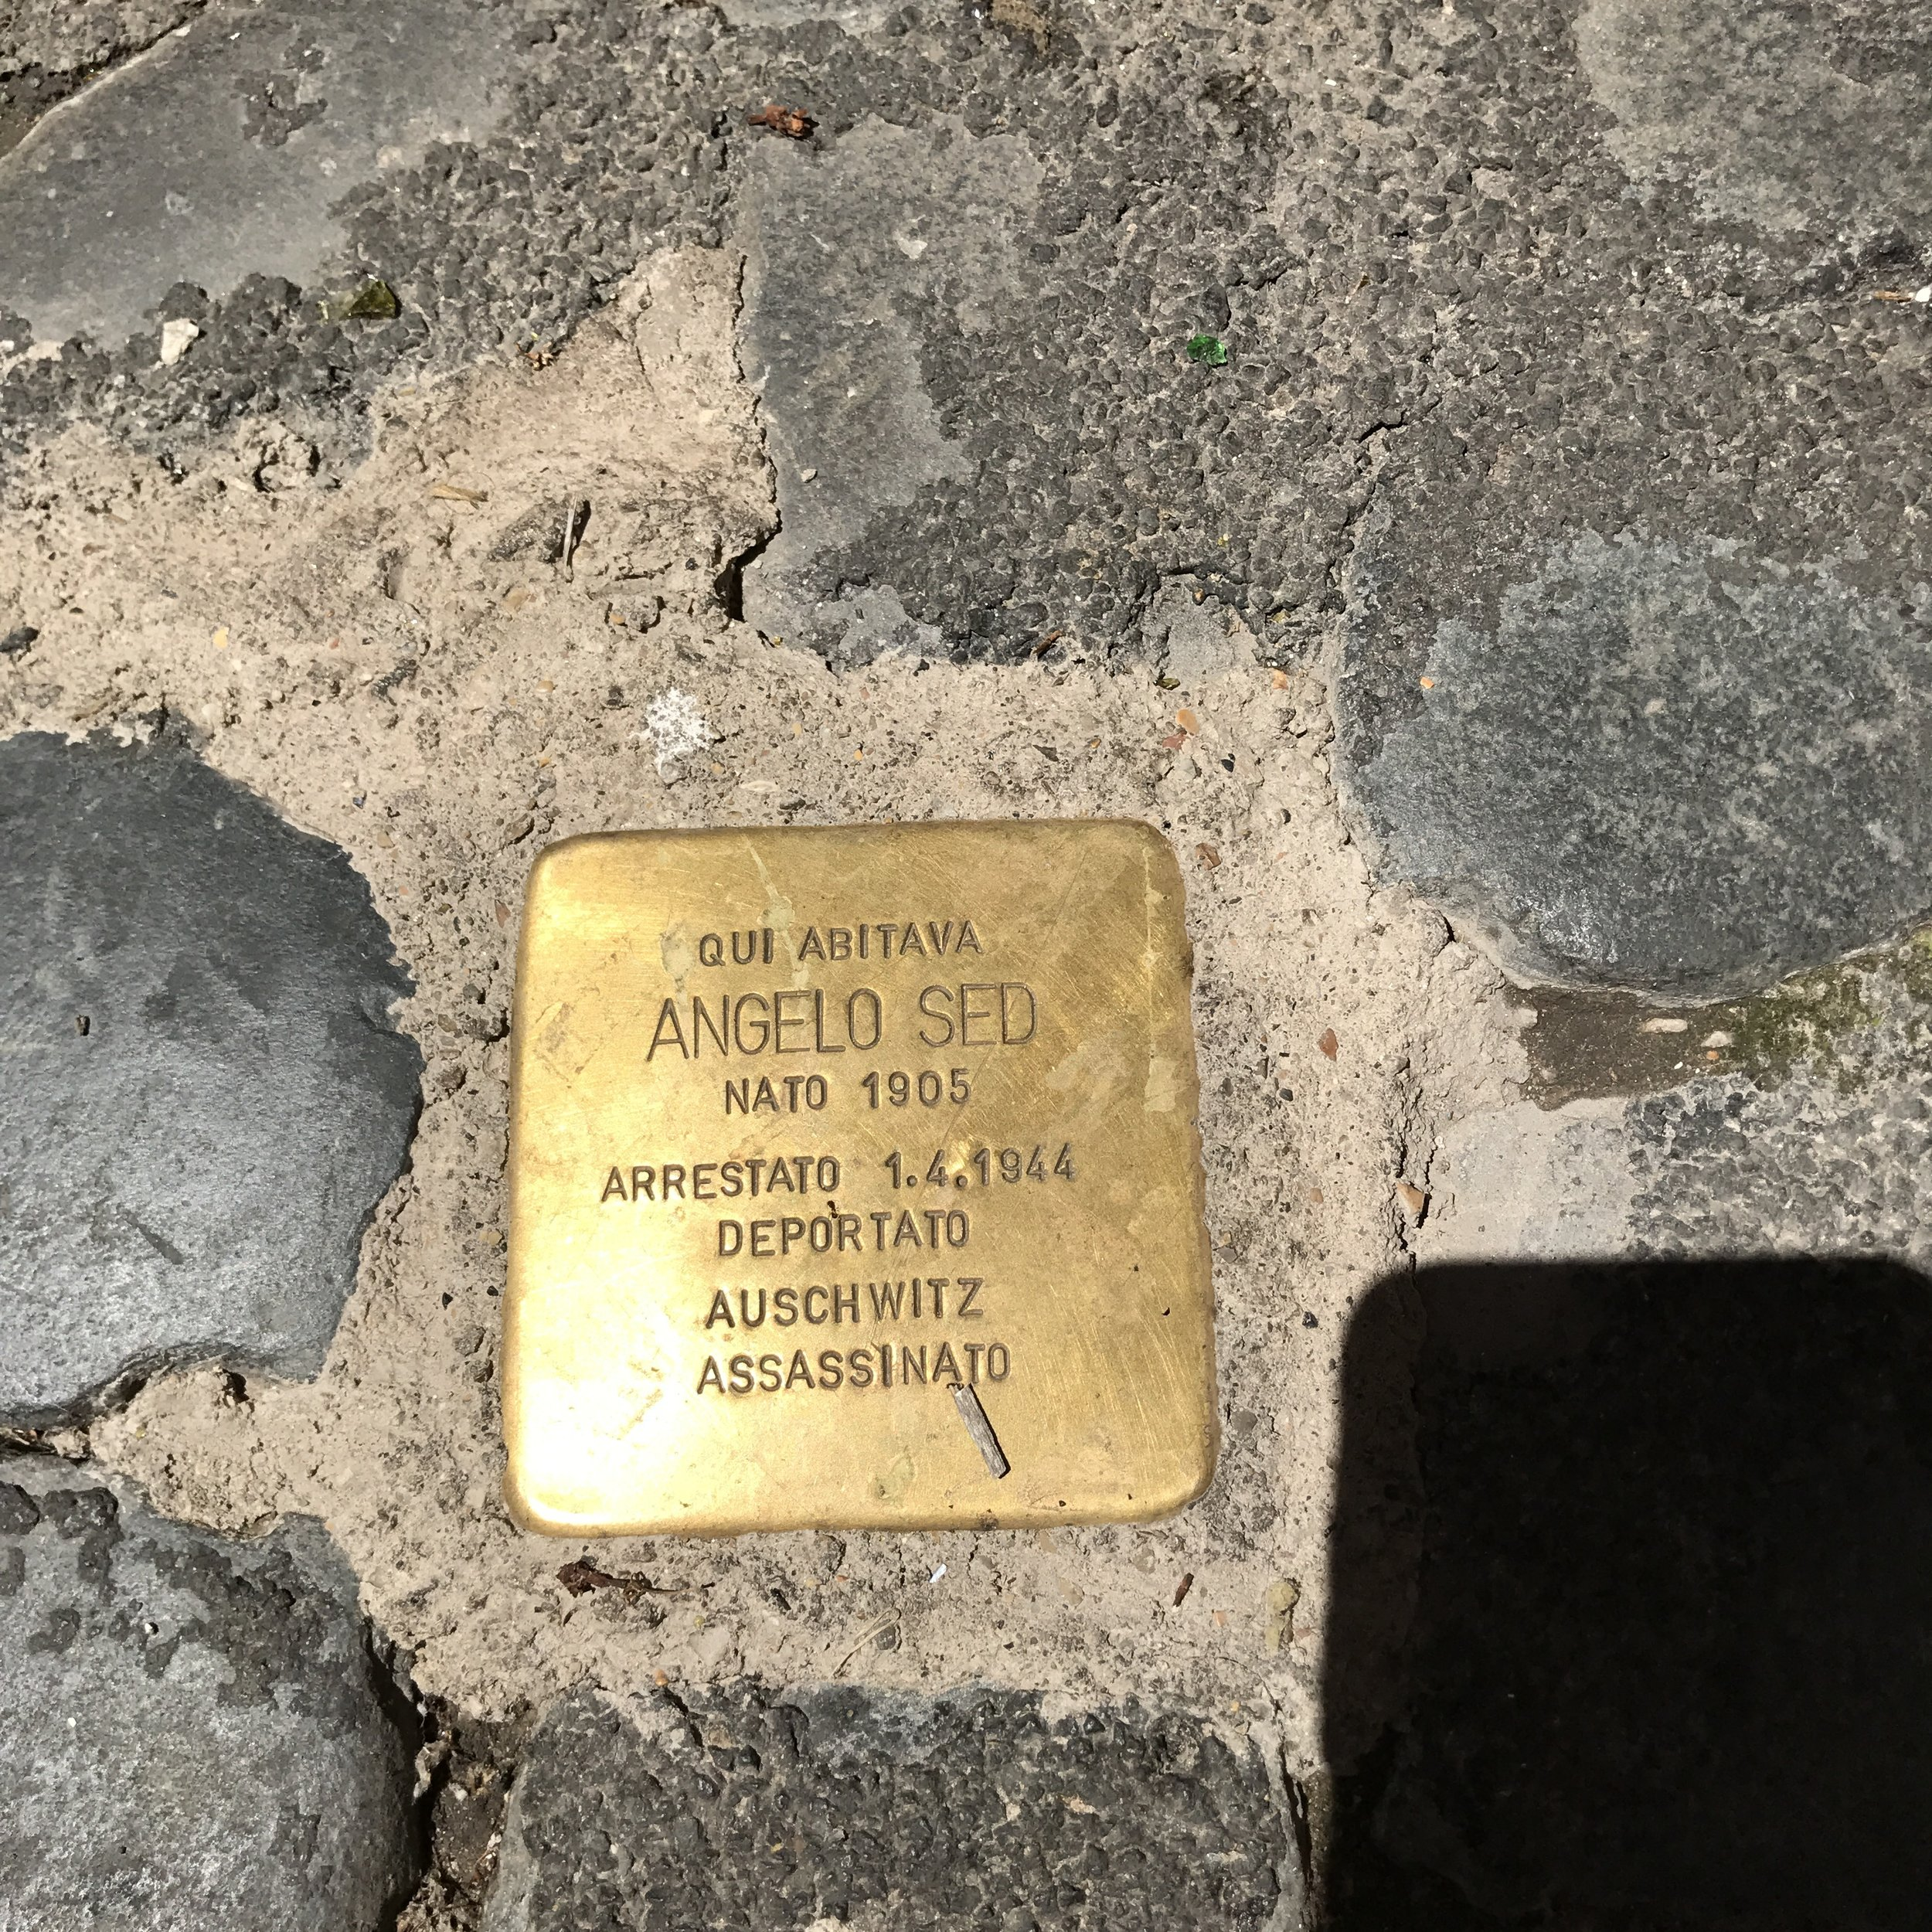 Stolpersteine  (stubling blocks)  commemorate the lives of Holocaust victims. A German artist came up with the idea to place these brass plaques outside of the homes where Jewish people lived freely before being persecuted by the nazis. About 56,000 can be found in 22 European countries.